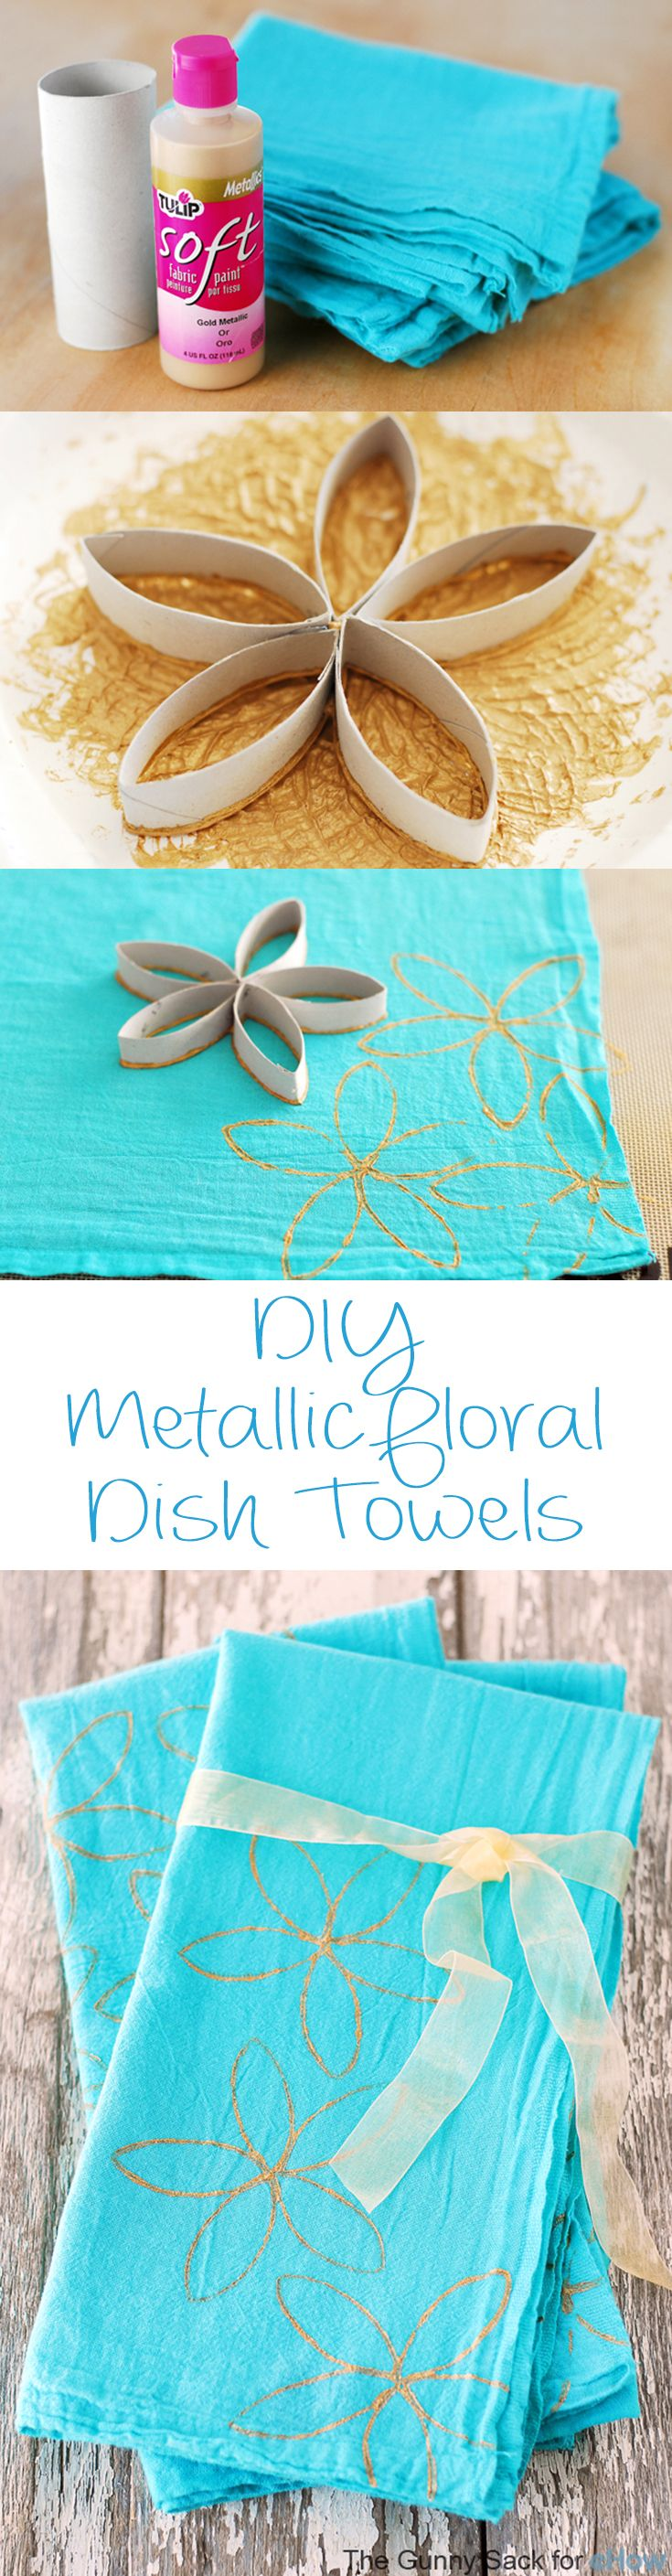 Super easy and customized dish towels. #spring #diy